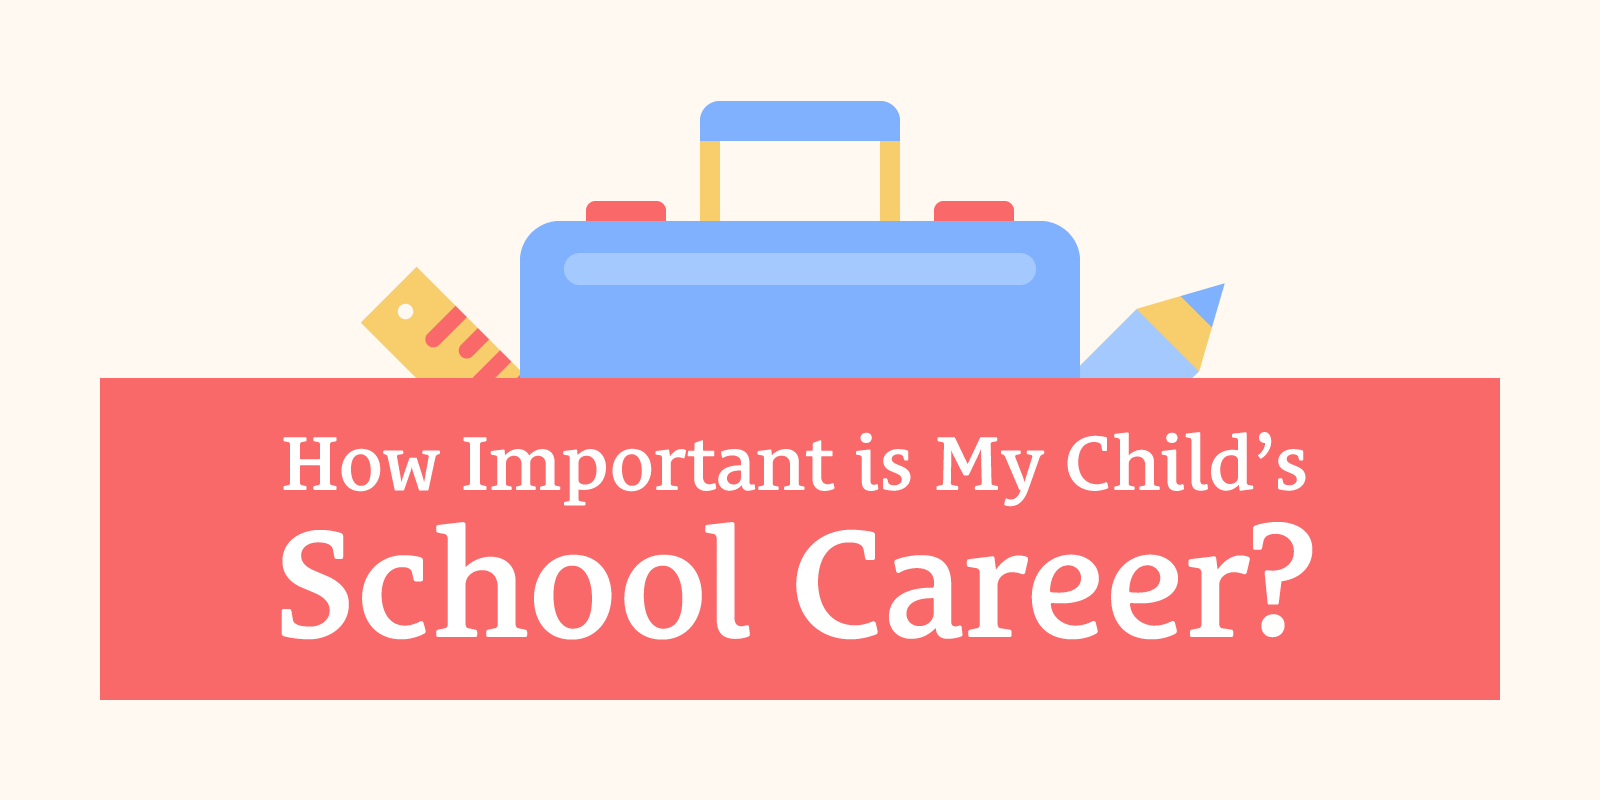 031: How Important is My Child's School Career?